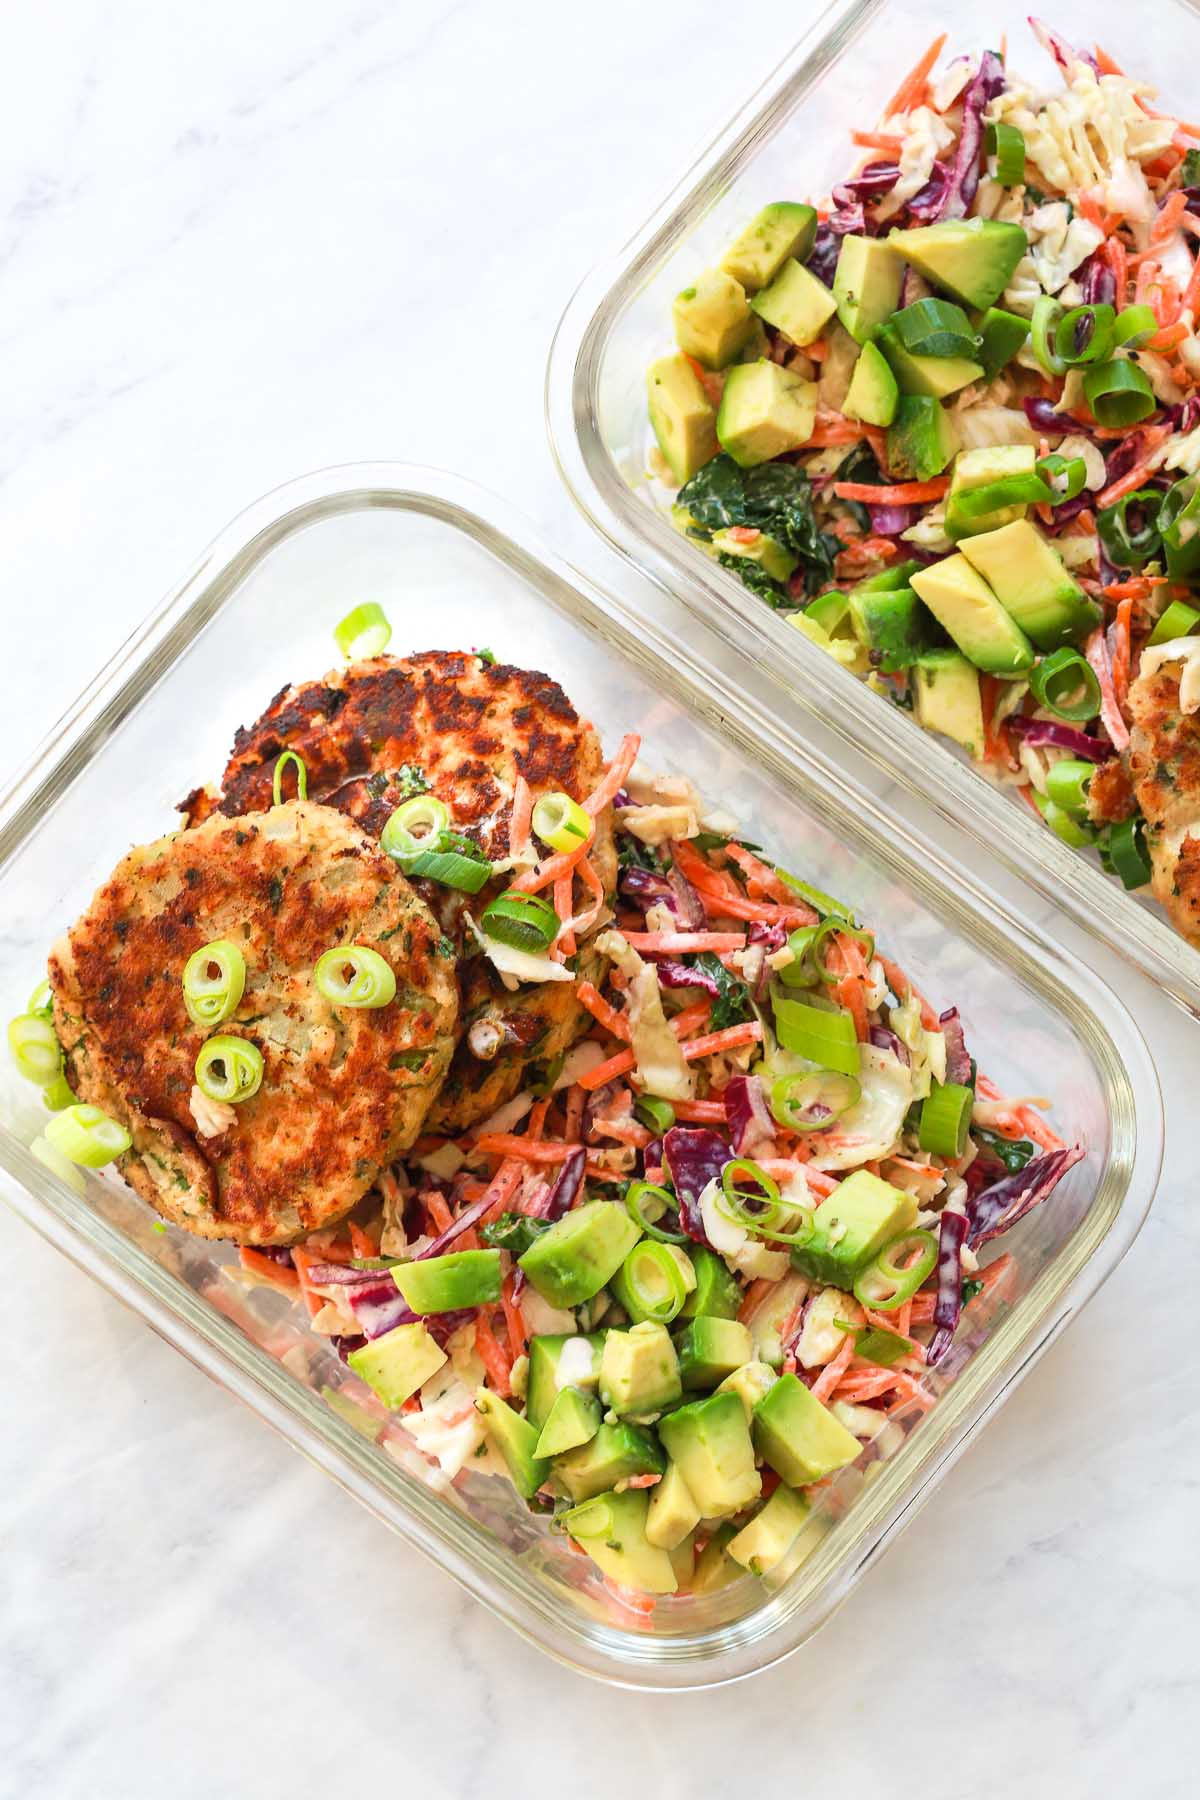 Two meal prep containers of salmon patties with coleslaw.